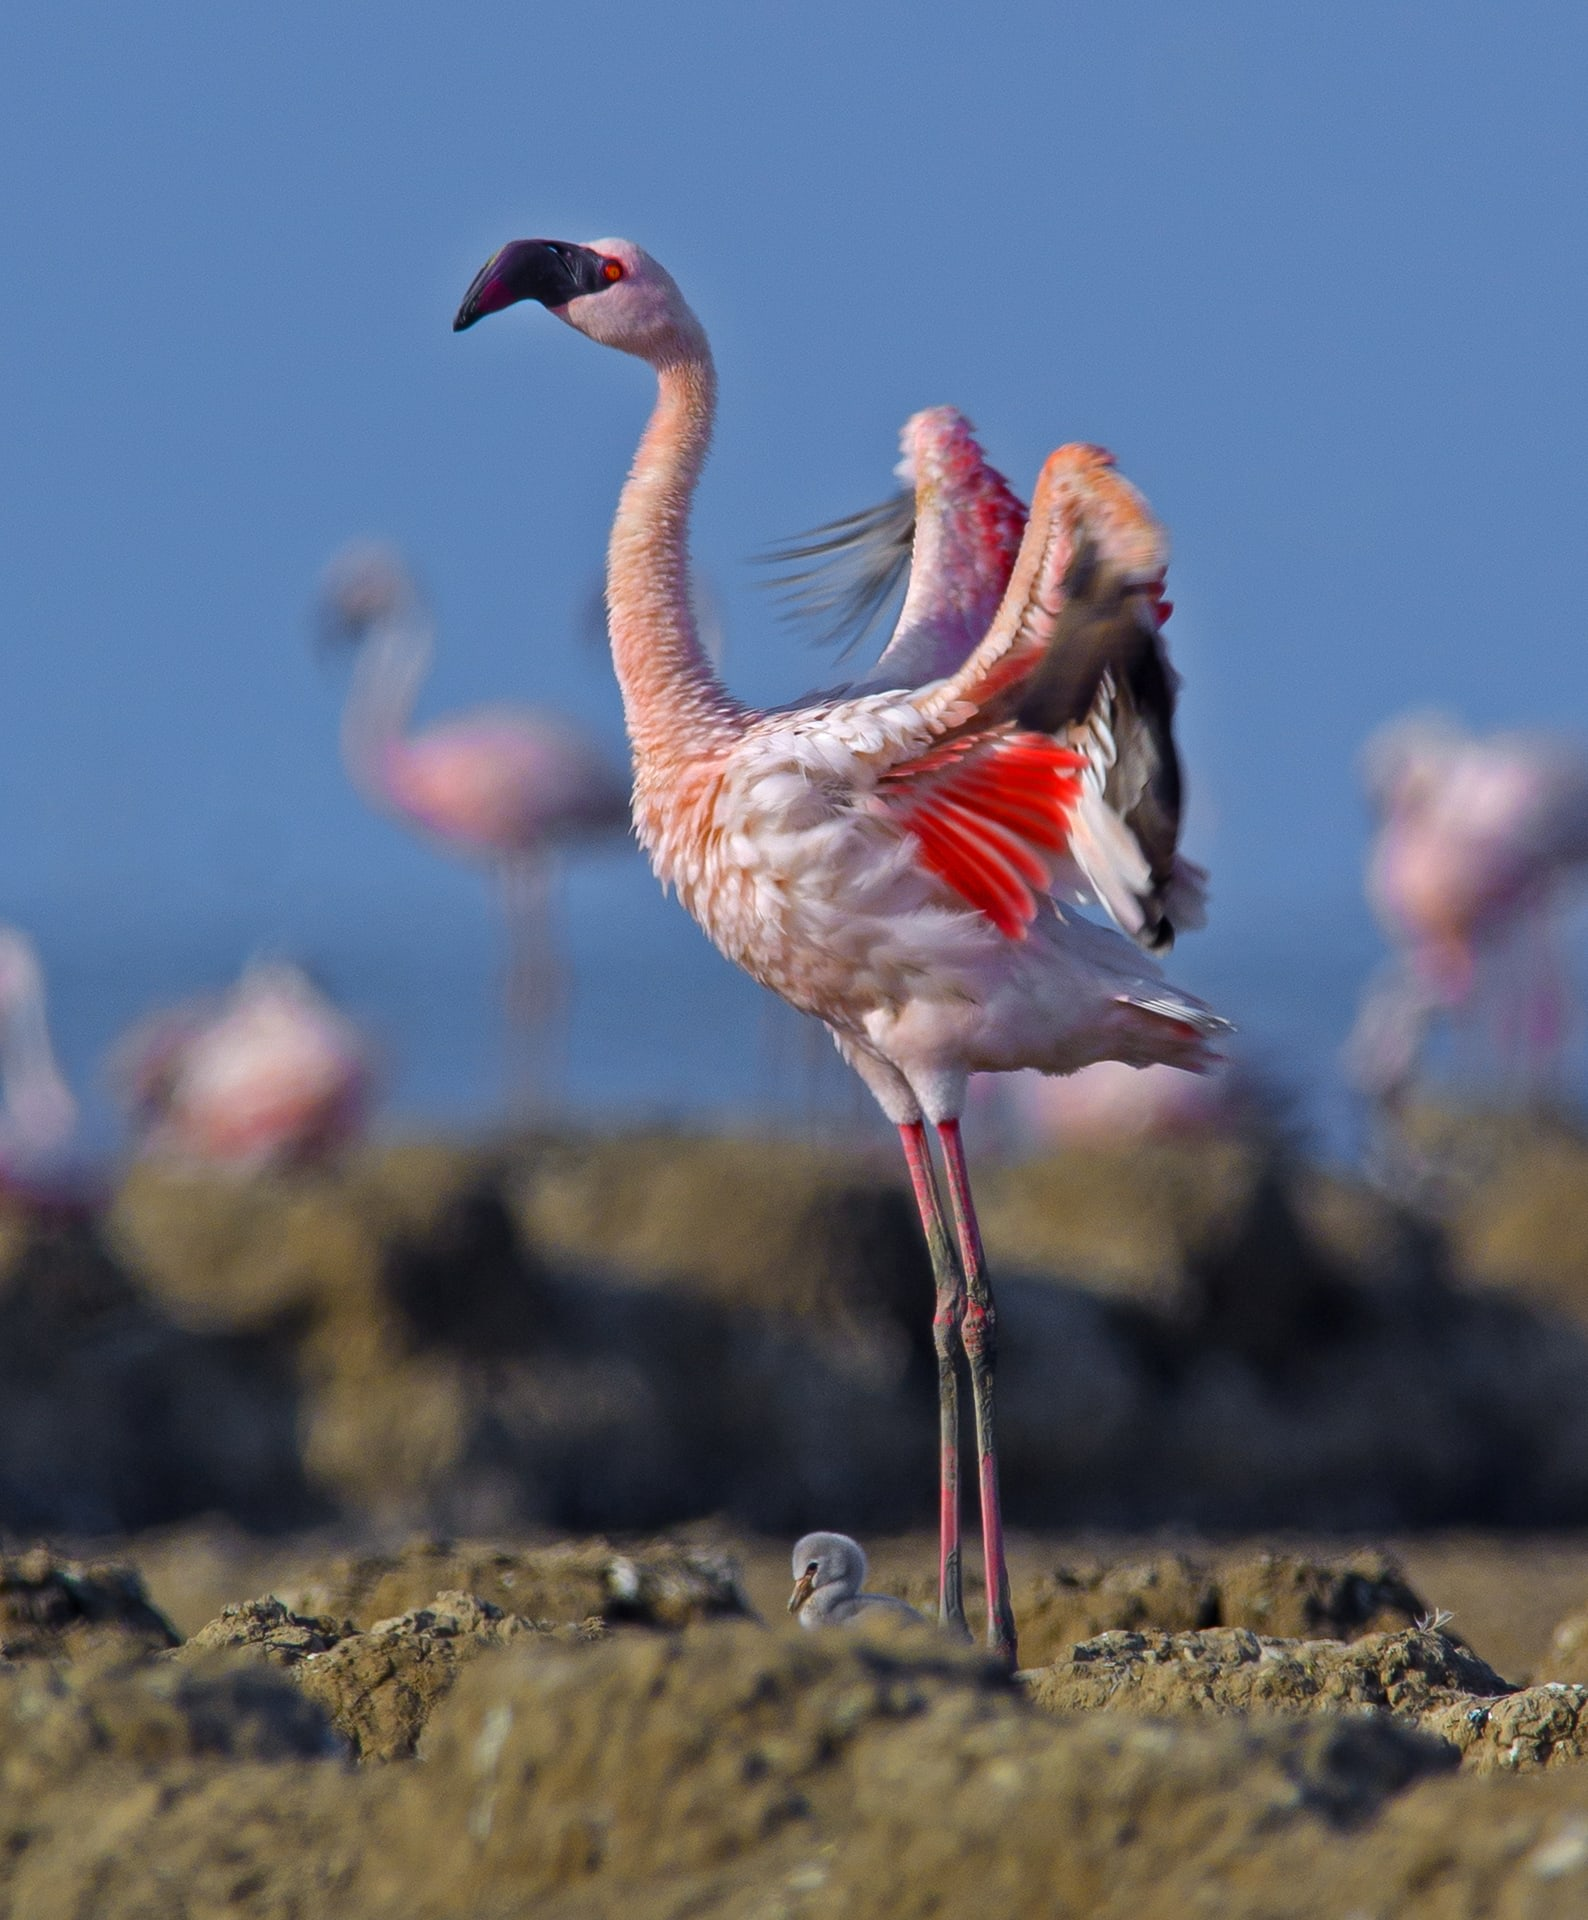 """Eggs take 27-30 days to hatch, says Shah. """"It takes the young between 24-36 hours to fully emerge from the egg, once the first crack, also known as a pip, has been made."""" Flamingo hatchlings are extremely resilient and fast-growing. They leave their nest within 4-8 days and start growing feathers for flight within a week. During this time, one parent remains with the chick while the other forages, sometimes going as far as 100 km away. """"It's quite amazing that the adults know exactly which nest is theirs, in a colony of 10,000 birds, based on the sounds between chicks and parents."""""""